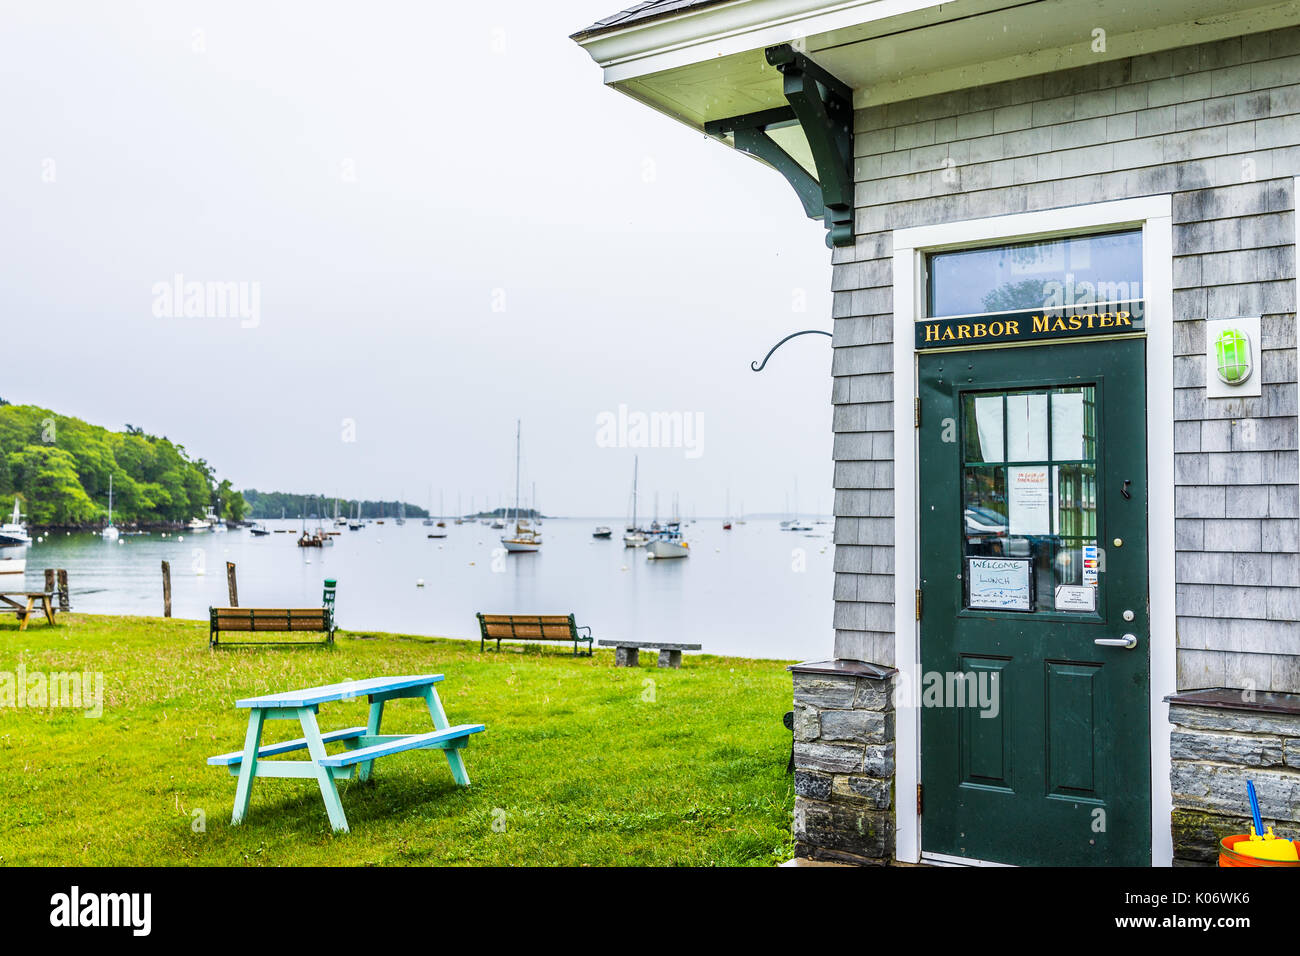 Rockport, USA - June 9, 2017: Harbor Master door sign in small Maine village by marina and boats - Stock Image